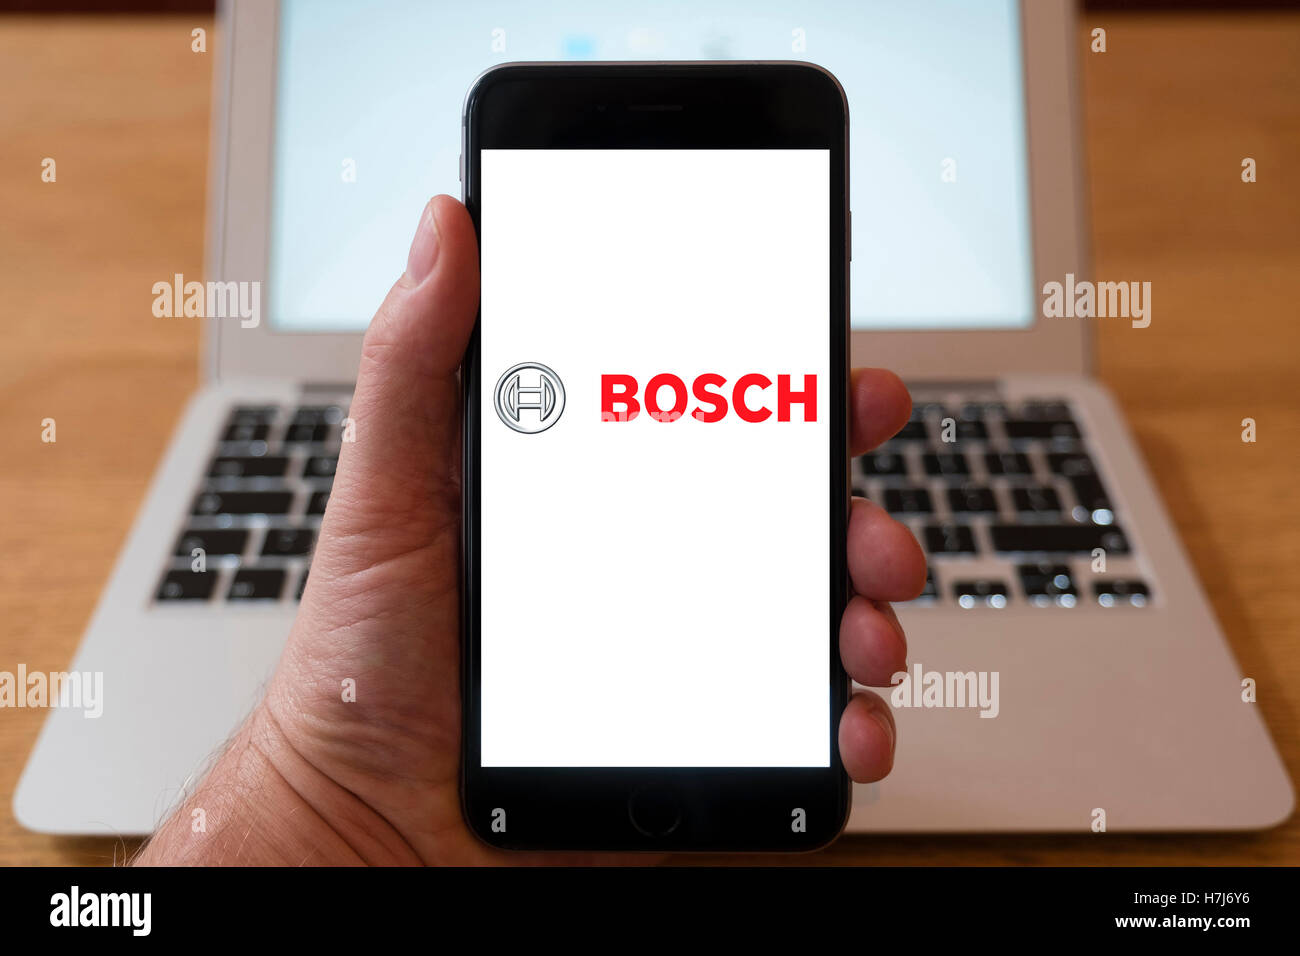 À l'aide d'iPhone smartphone pour Afficher logo de multinationales industrielles Bosch Photo Stock